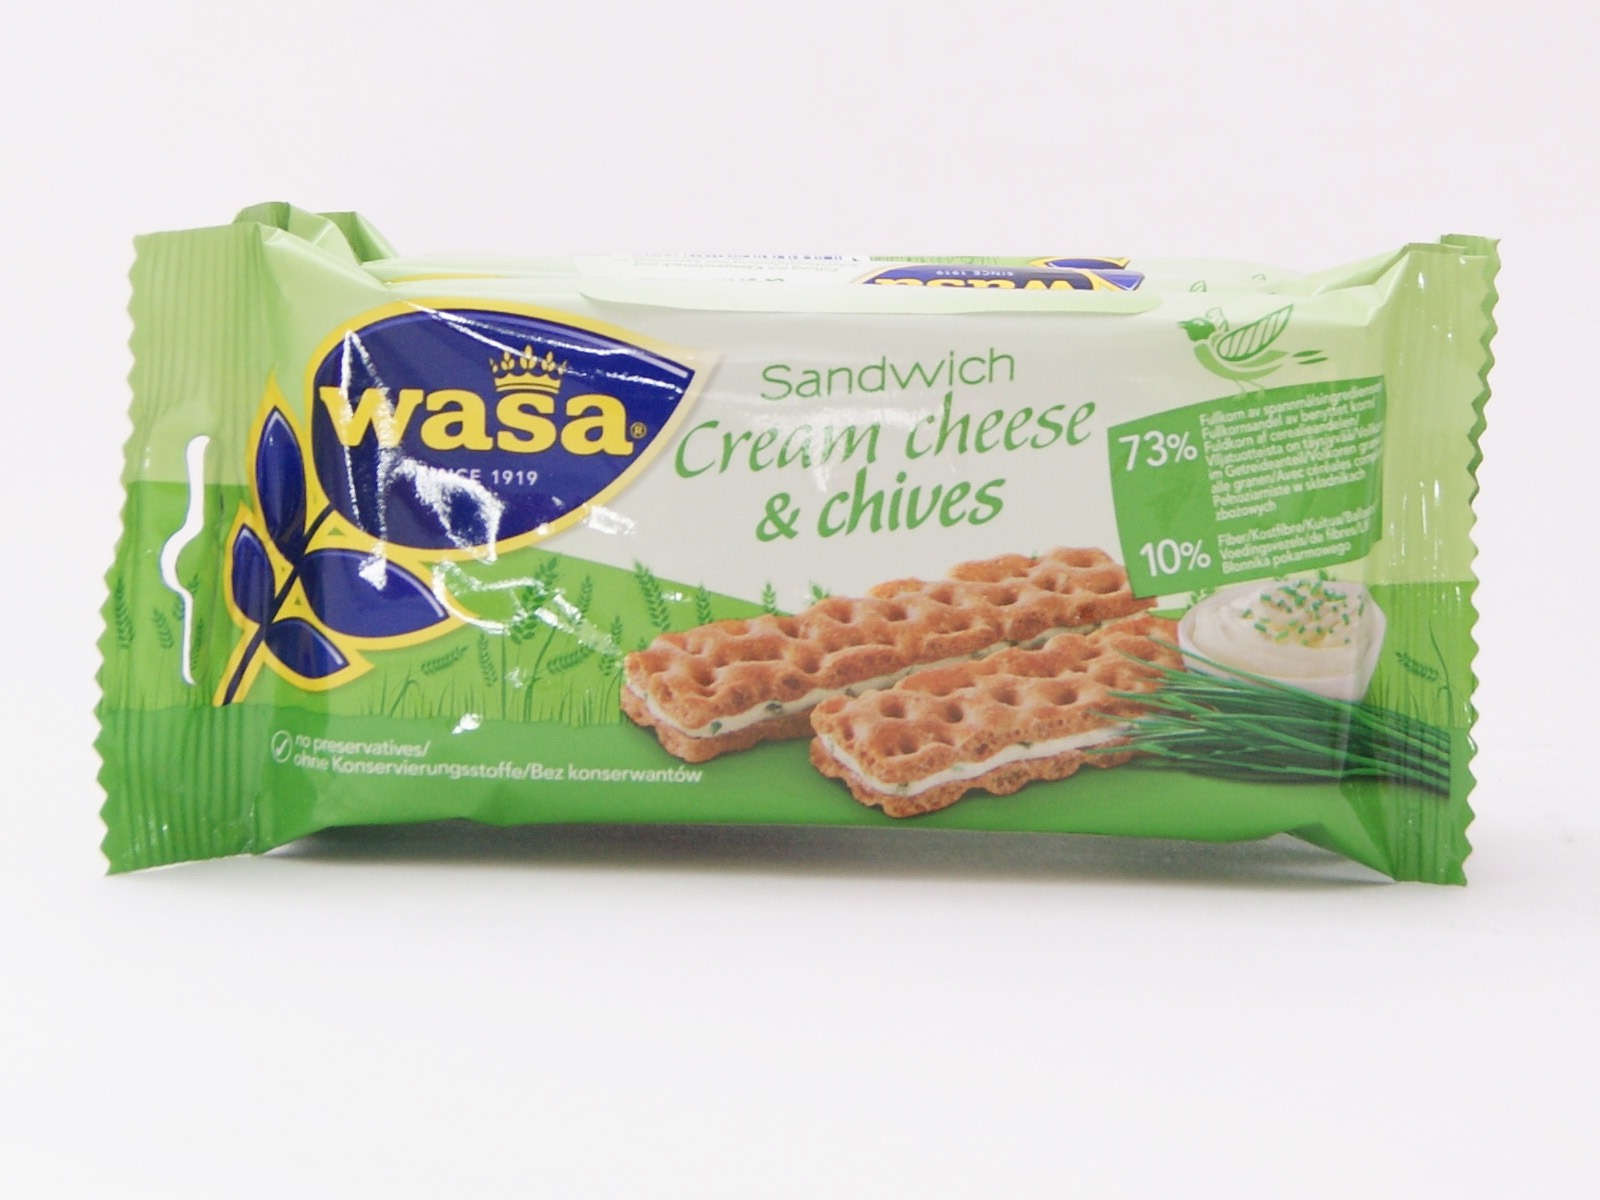 Wasa Sandwich Cream Cheese and Olives